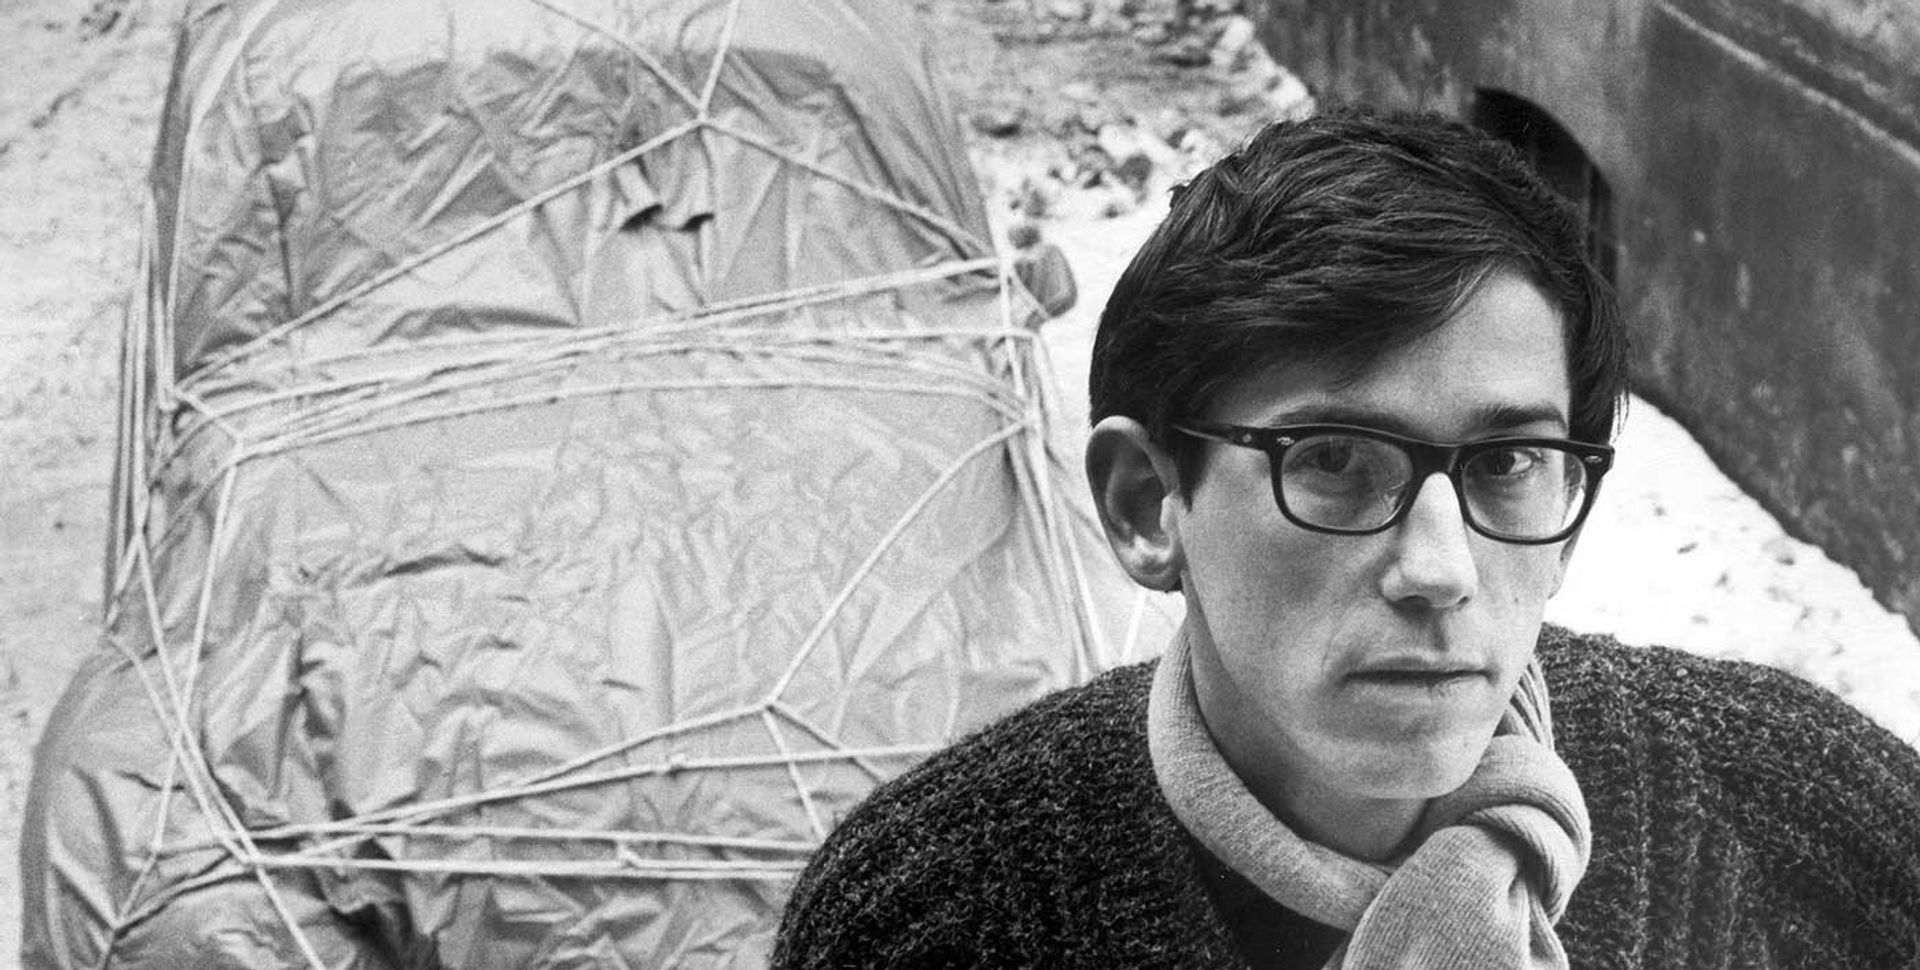 Christo with one of his earliest wrapped works, Wrapped Car (Volkswagen), which he produced in 1963. Photo: Charles Wilp; © 1963 Christo Christo with one of his earliest wrapped works, Wrapped Car (Volkswagen), which he produced in 1963. Photo: Charles Wilp; © 1963 Christo